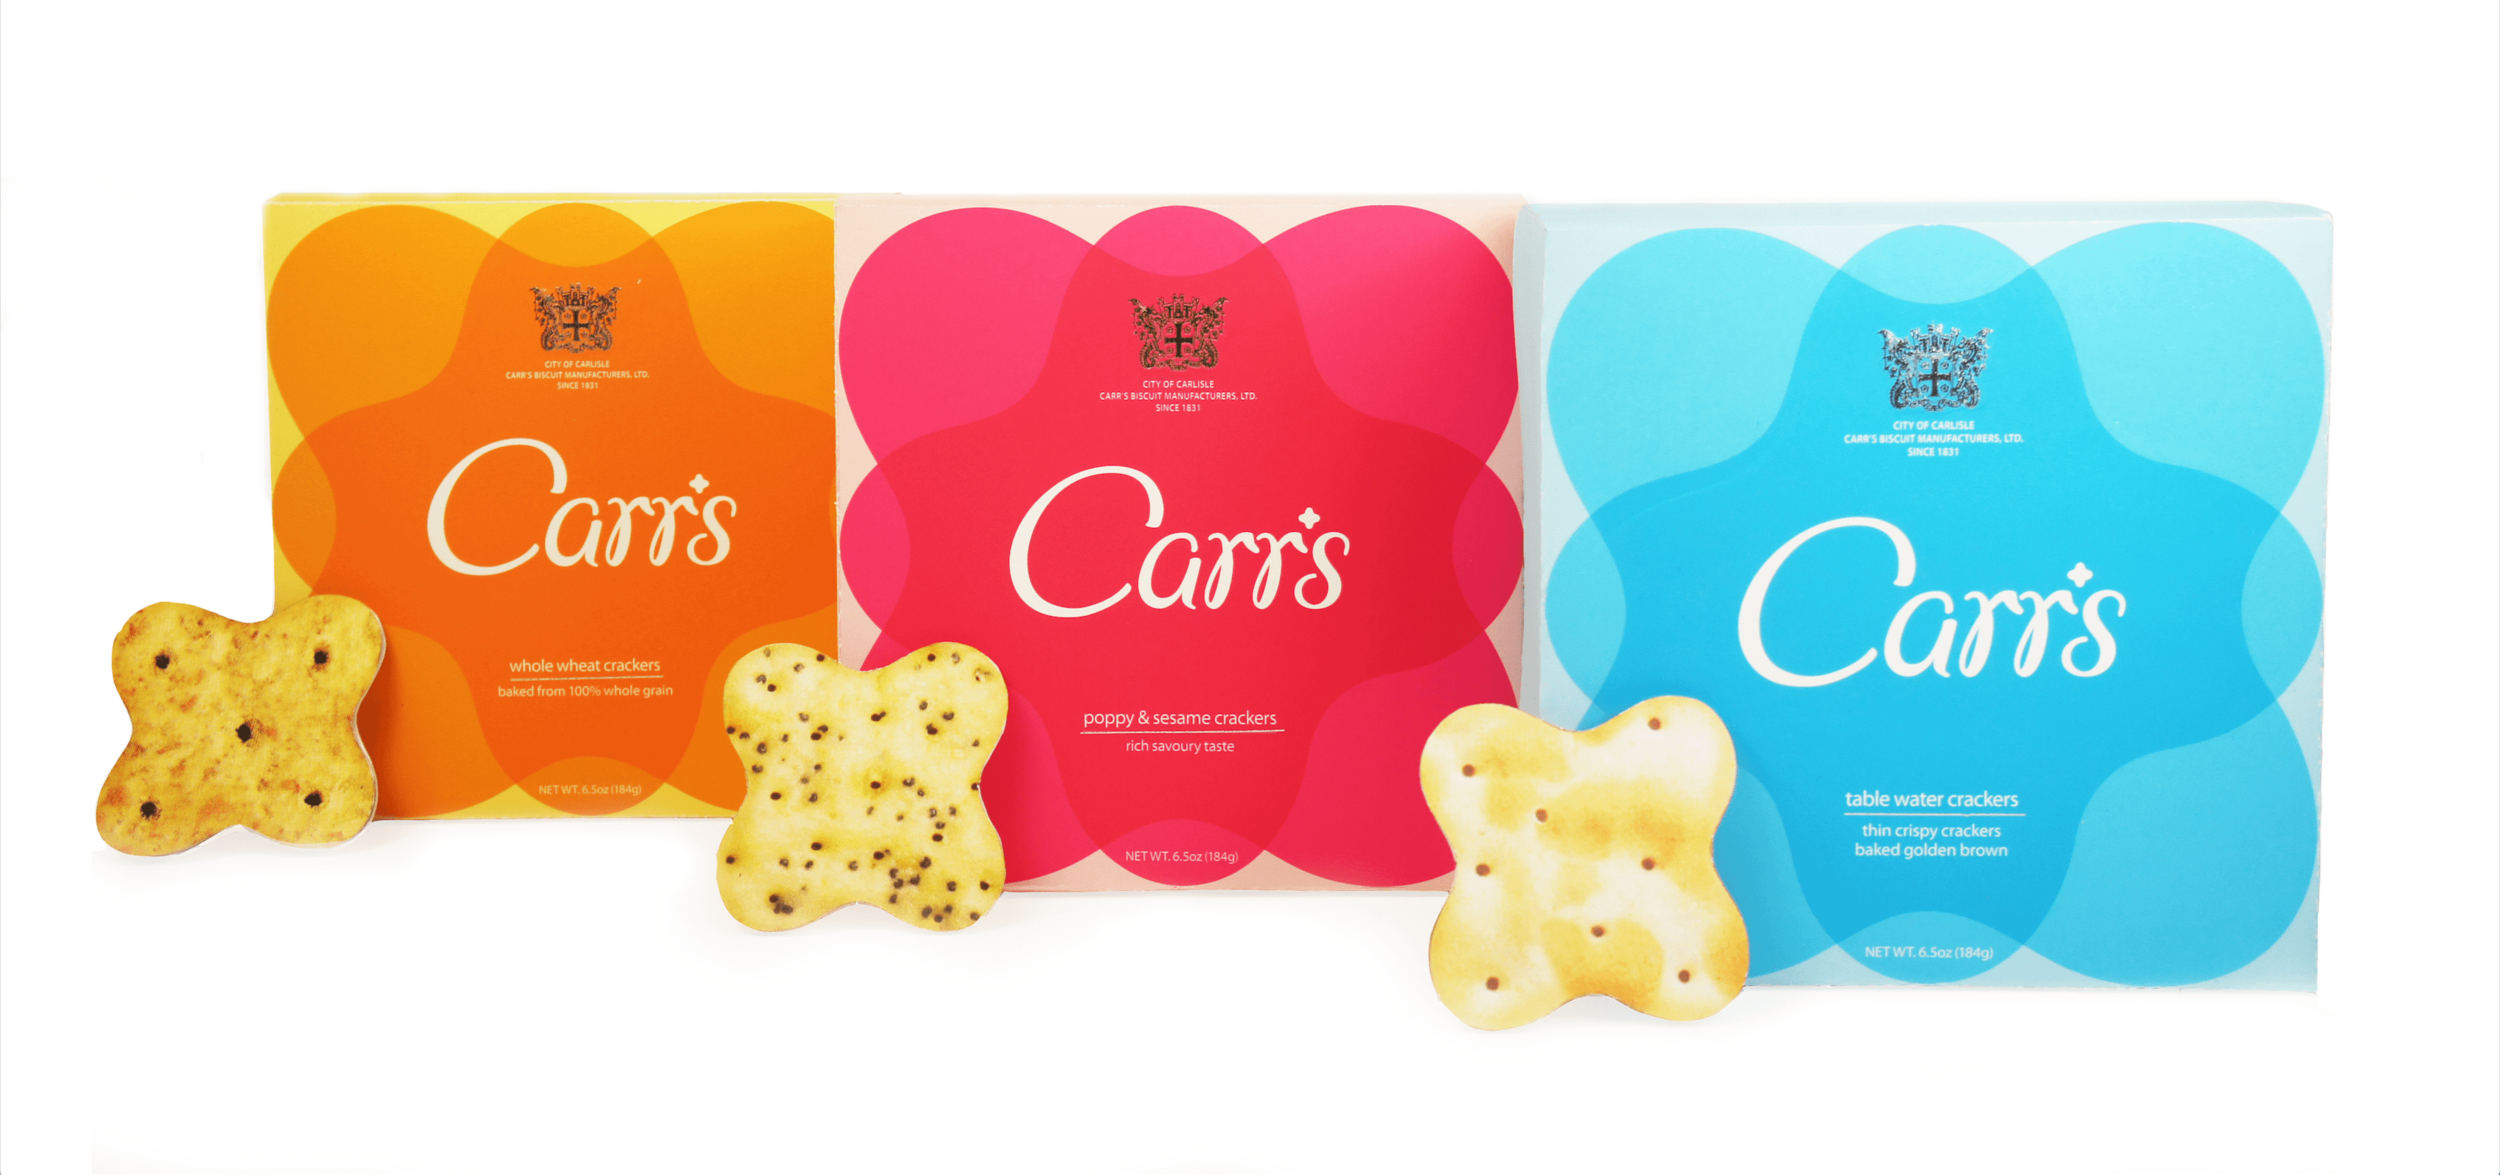 Redesign-Carr's-Biscuits-Redesign-boxes.png